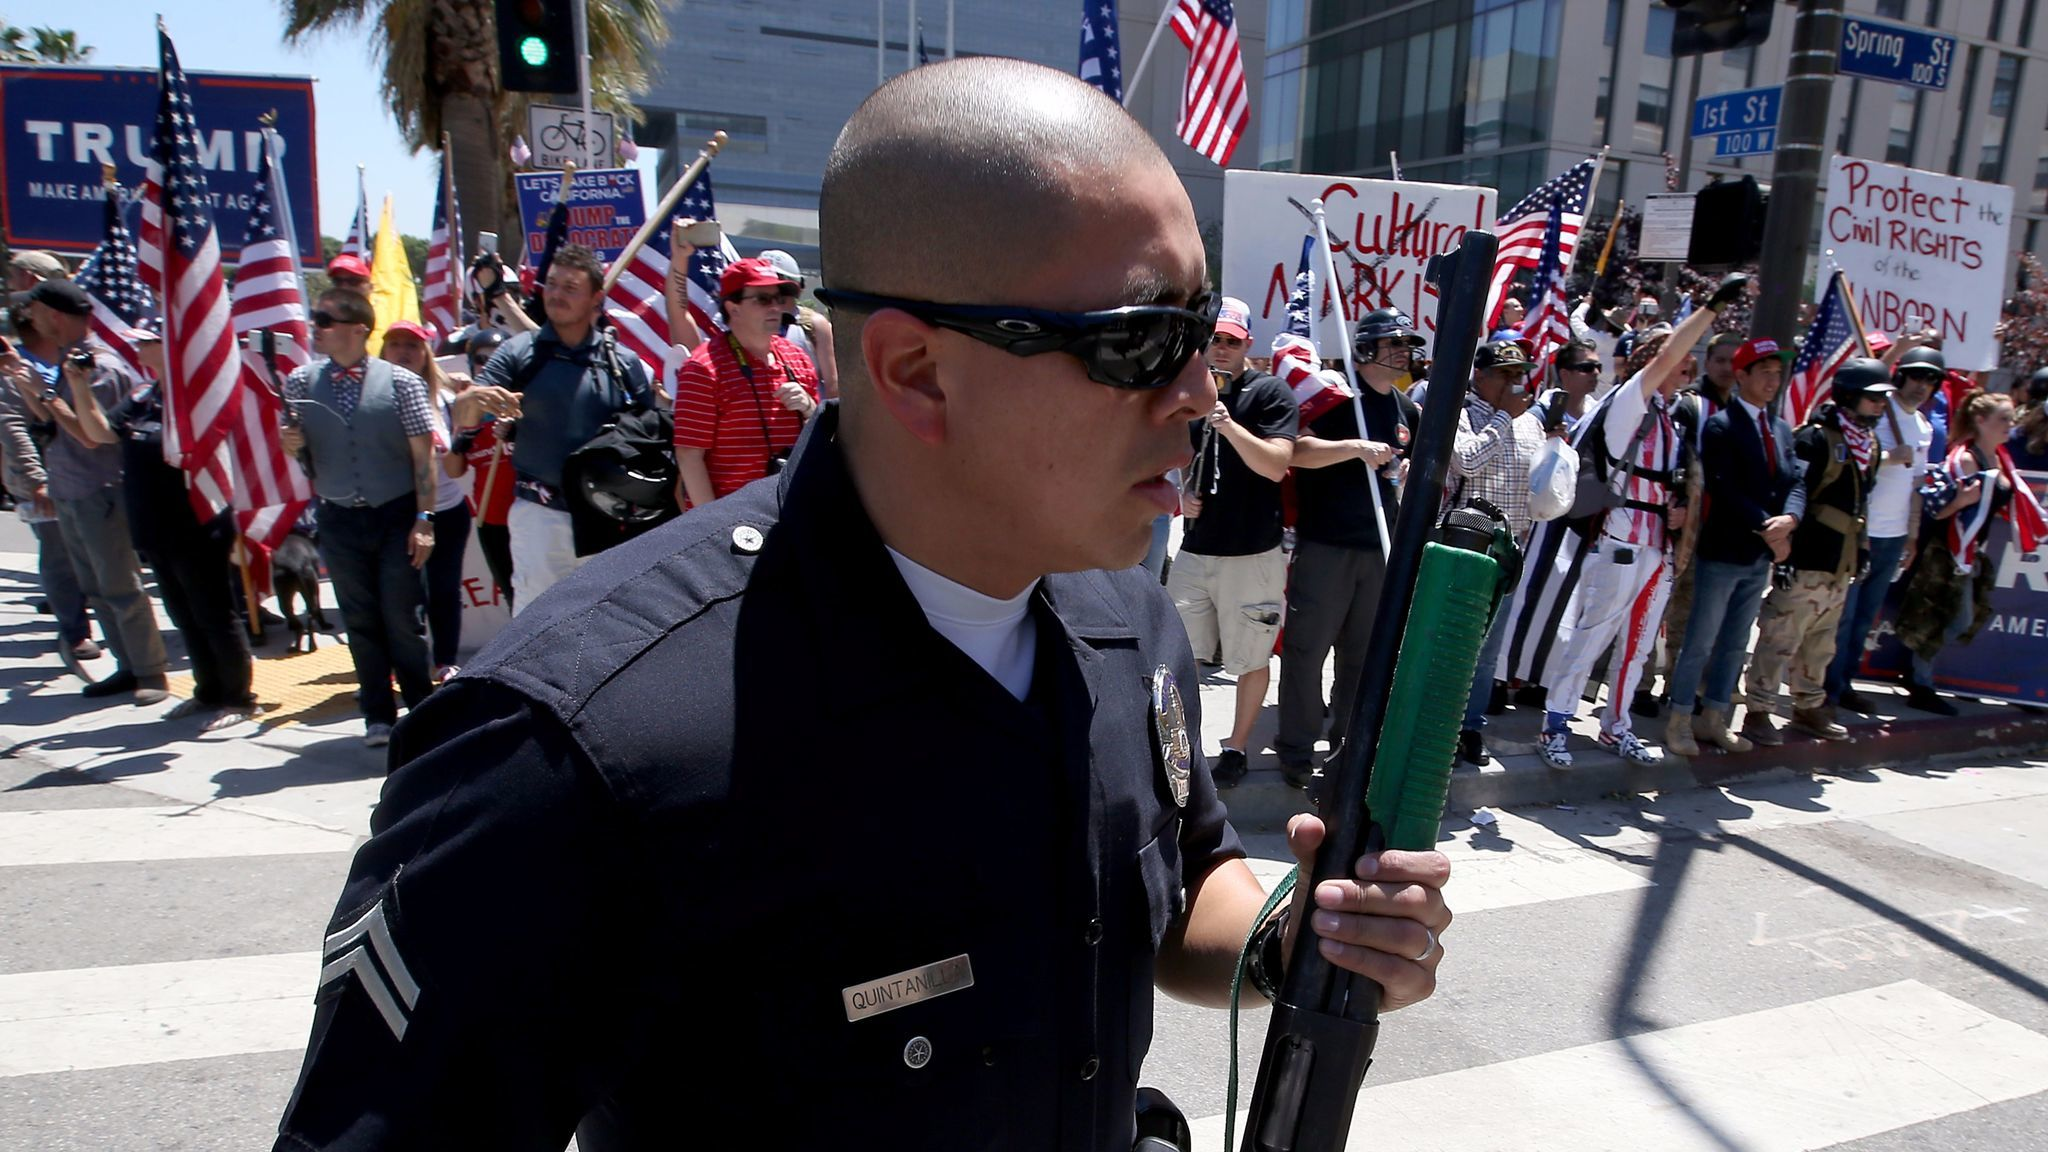 LAPD officers form a wall between pro- and anti-Trump protesters as they converge at 1st and Spring streets in downtown Los Angeles at the conclusion of separate May Day marches and rallies.